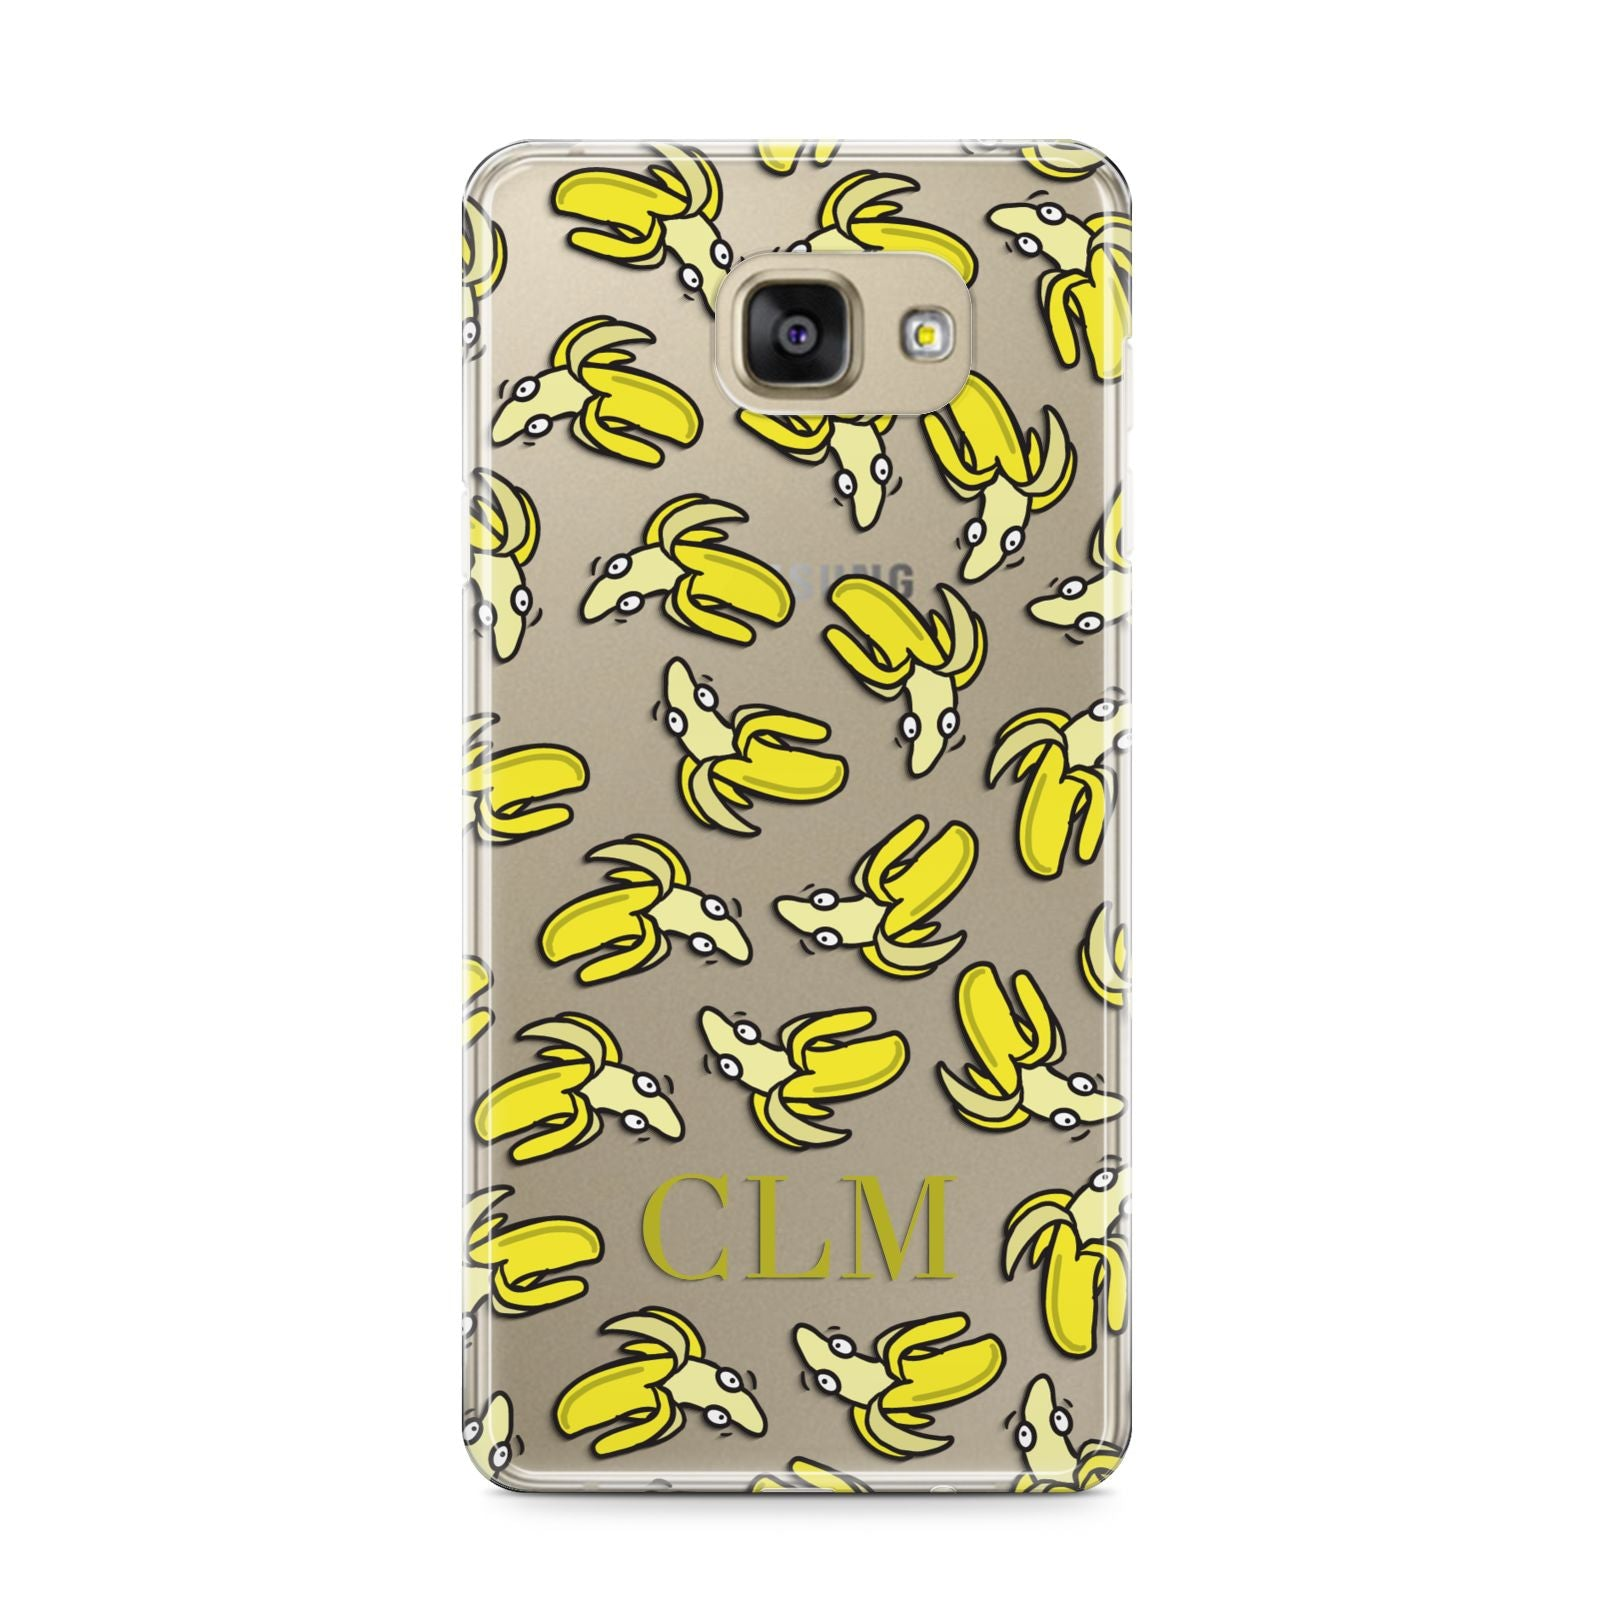 Personalised Banana Initials Clear Samsung Galaxy A9 2016 Case on gold phone